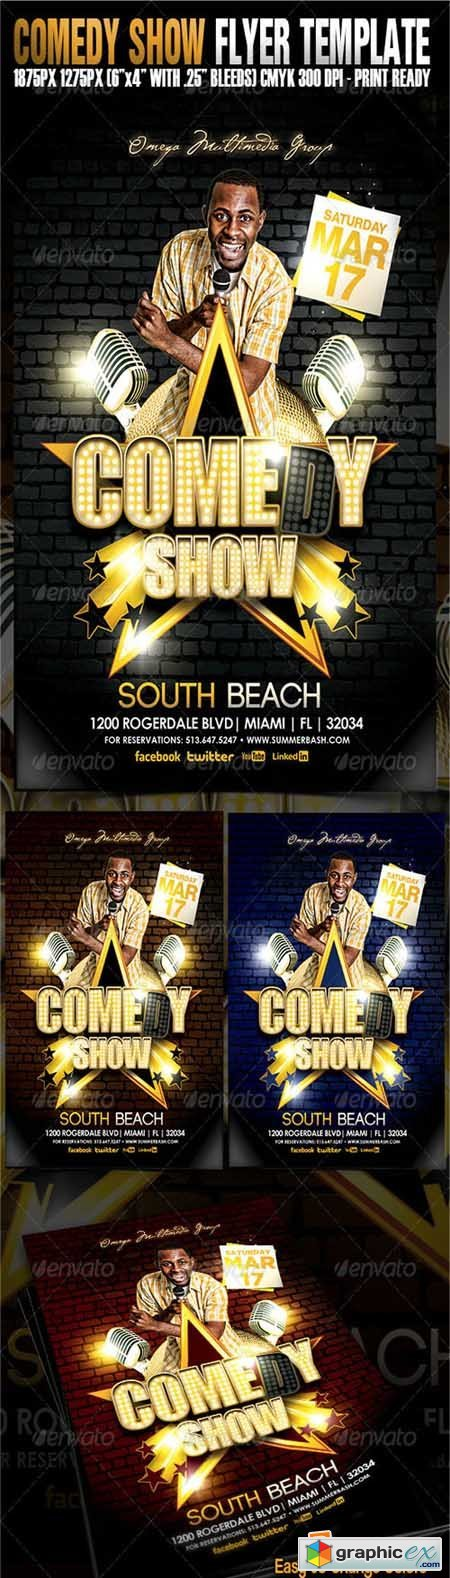 Comedy Show Flyer Template 3956376 » Free Download Vector Stock